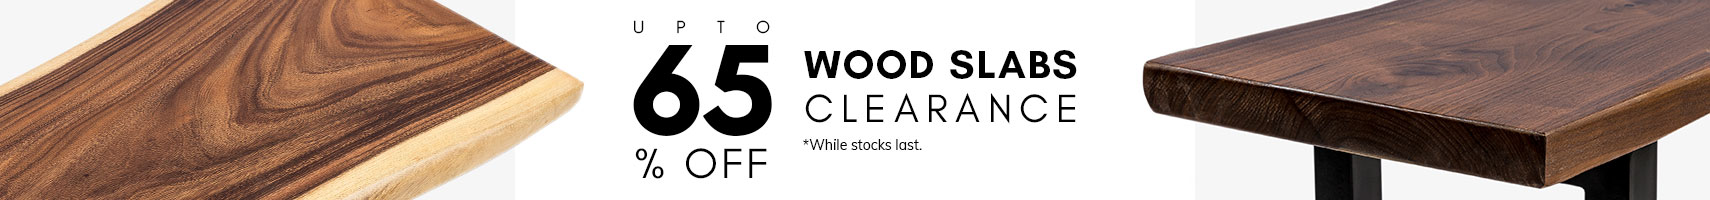 Wood Slabs Clearance Sale. Up to 65% Off!